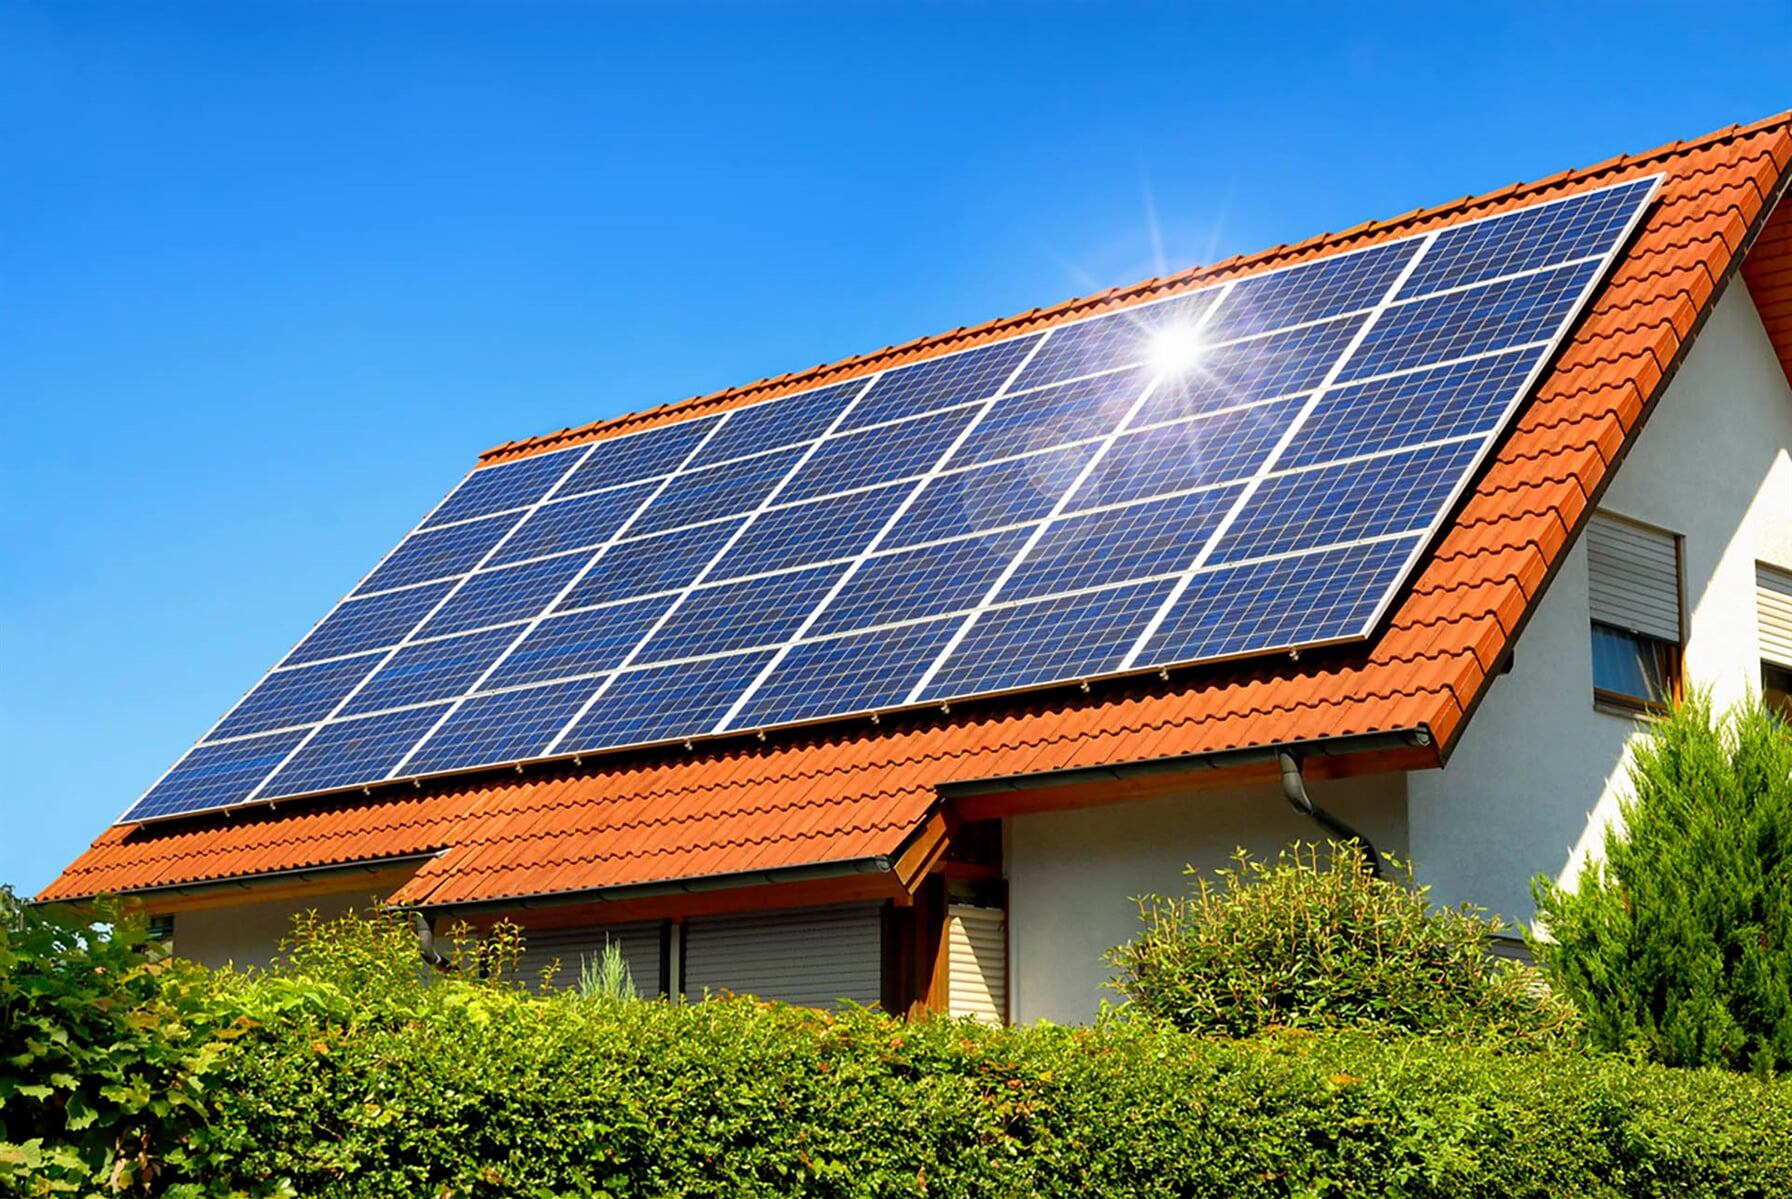 Solar-panel-on-a-red-roof-525206743_1254x839 (1)